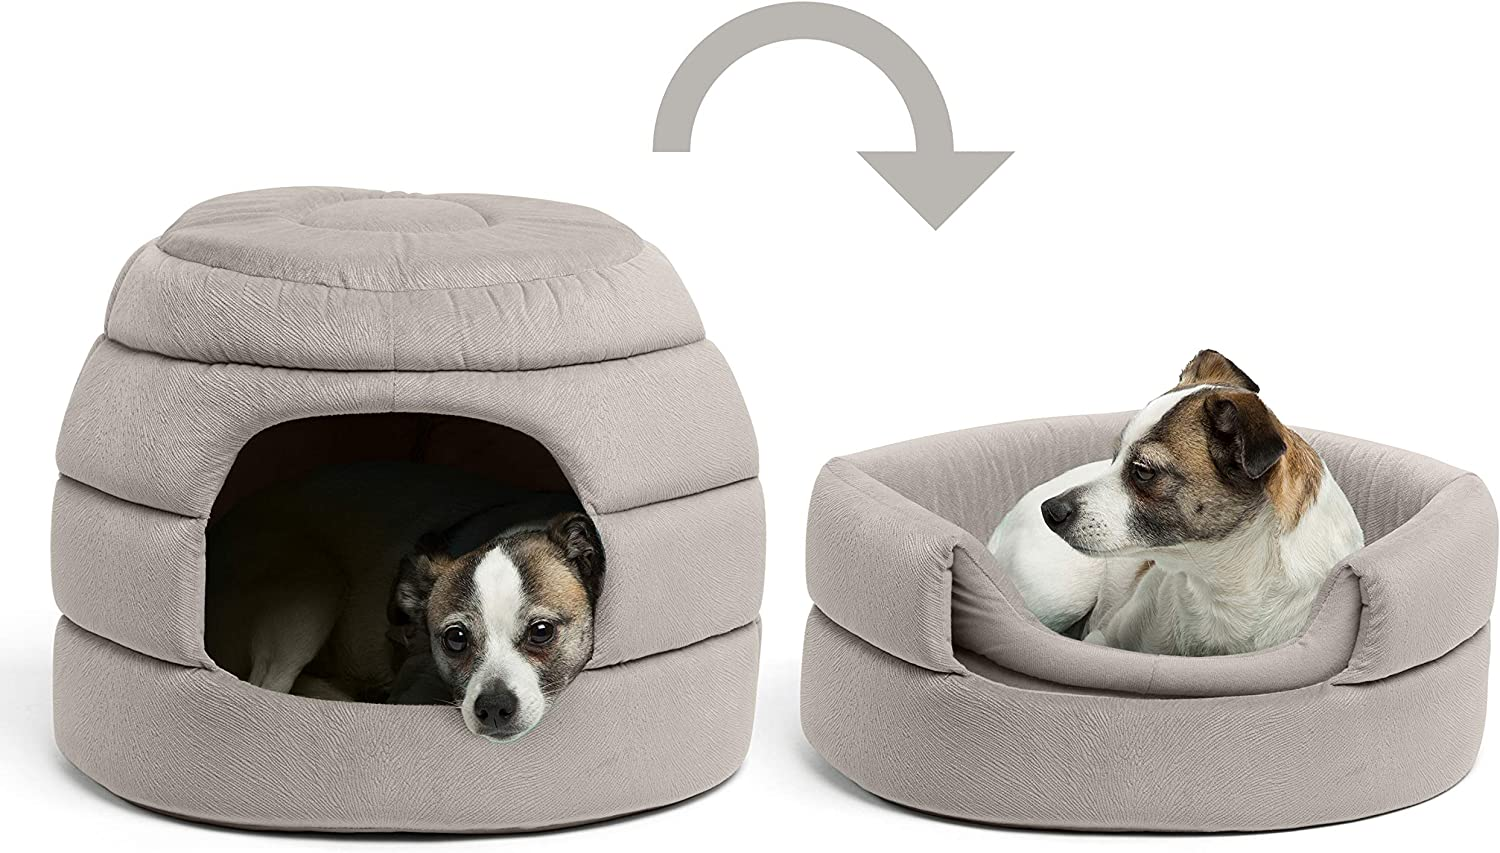 Cozy Covered Dog /& Cat Tent Great for Your Small Pet /& Puppy Removable Insert Easily Convert into Round Open Cuddler Best Friends by Sheri Convertible Honeycomb Cave Bed Machine Washable